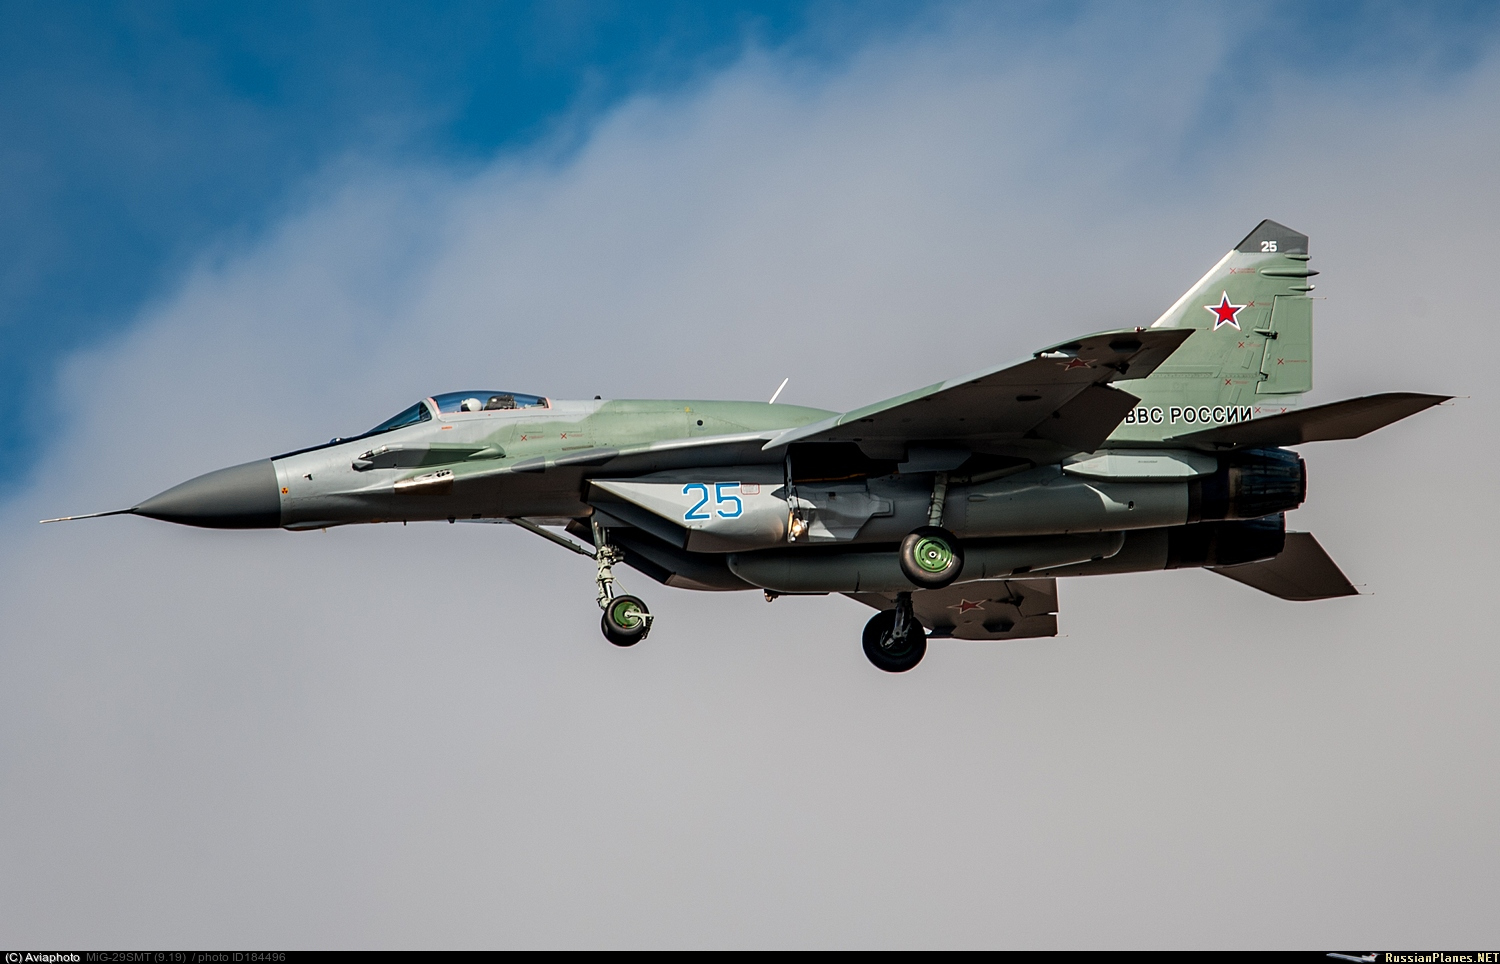 http://russianplanes.net/images/to185000/184496.jpg